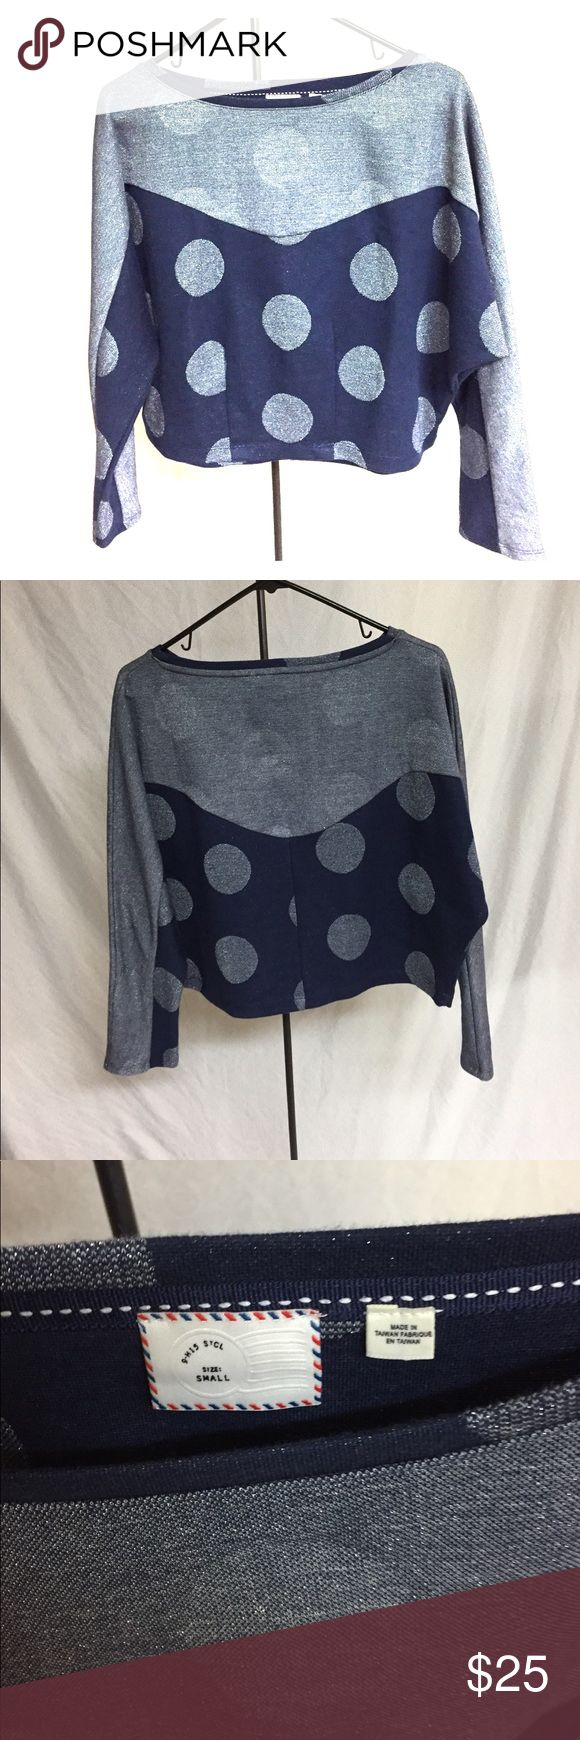 Anthropologie blue and silver crop top. So cute! Dark and light blue crop top with circle design and subtle sparkles. Looks super cute with jeans! Size small but fits a little bigger. Anthropologie Tops Crop Tops